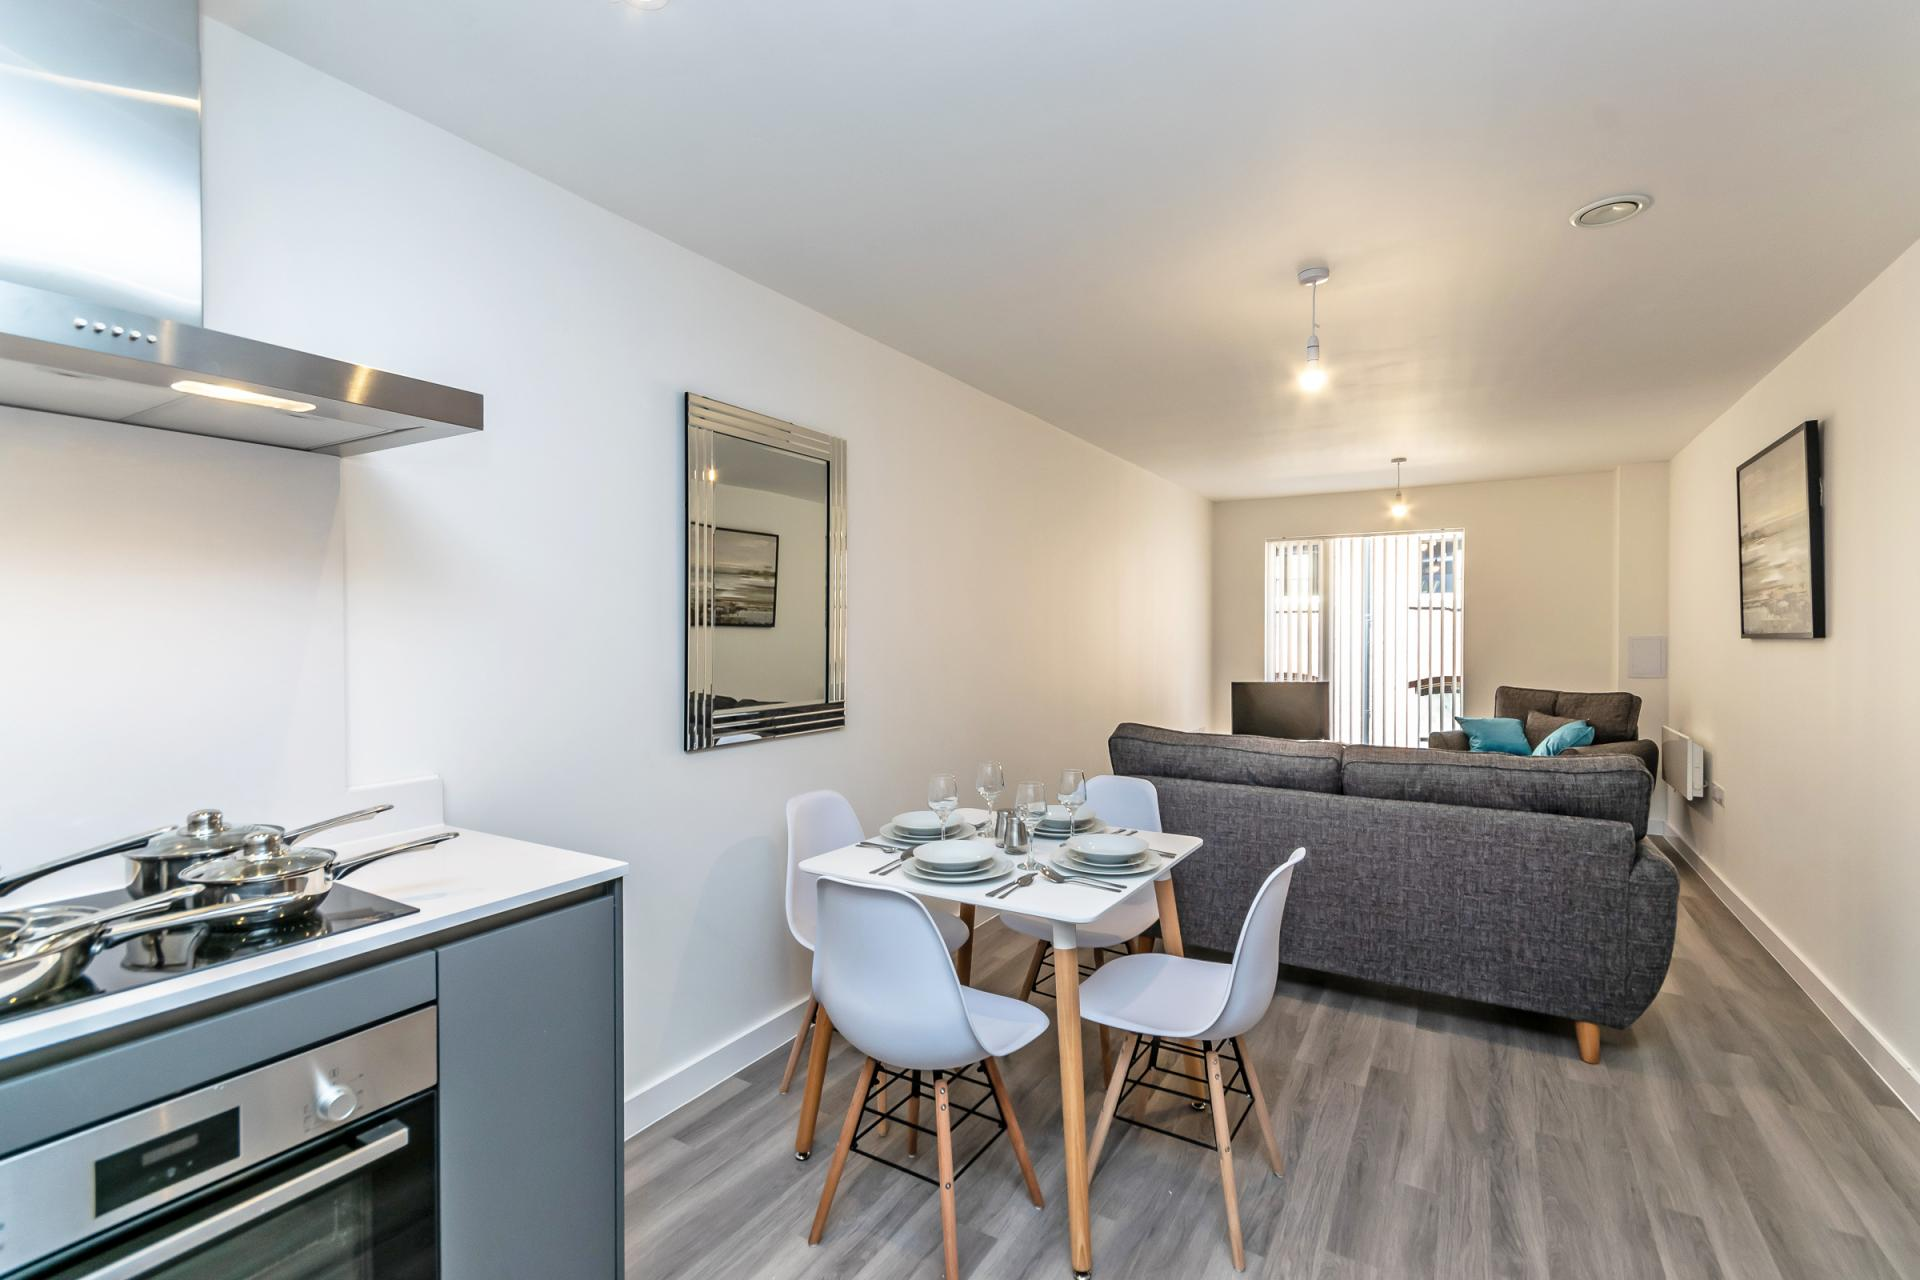 Oven at Halo House Serviced Apartments, Green Quarter, Manchester - Citybase Apartments